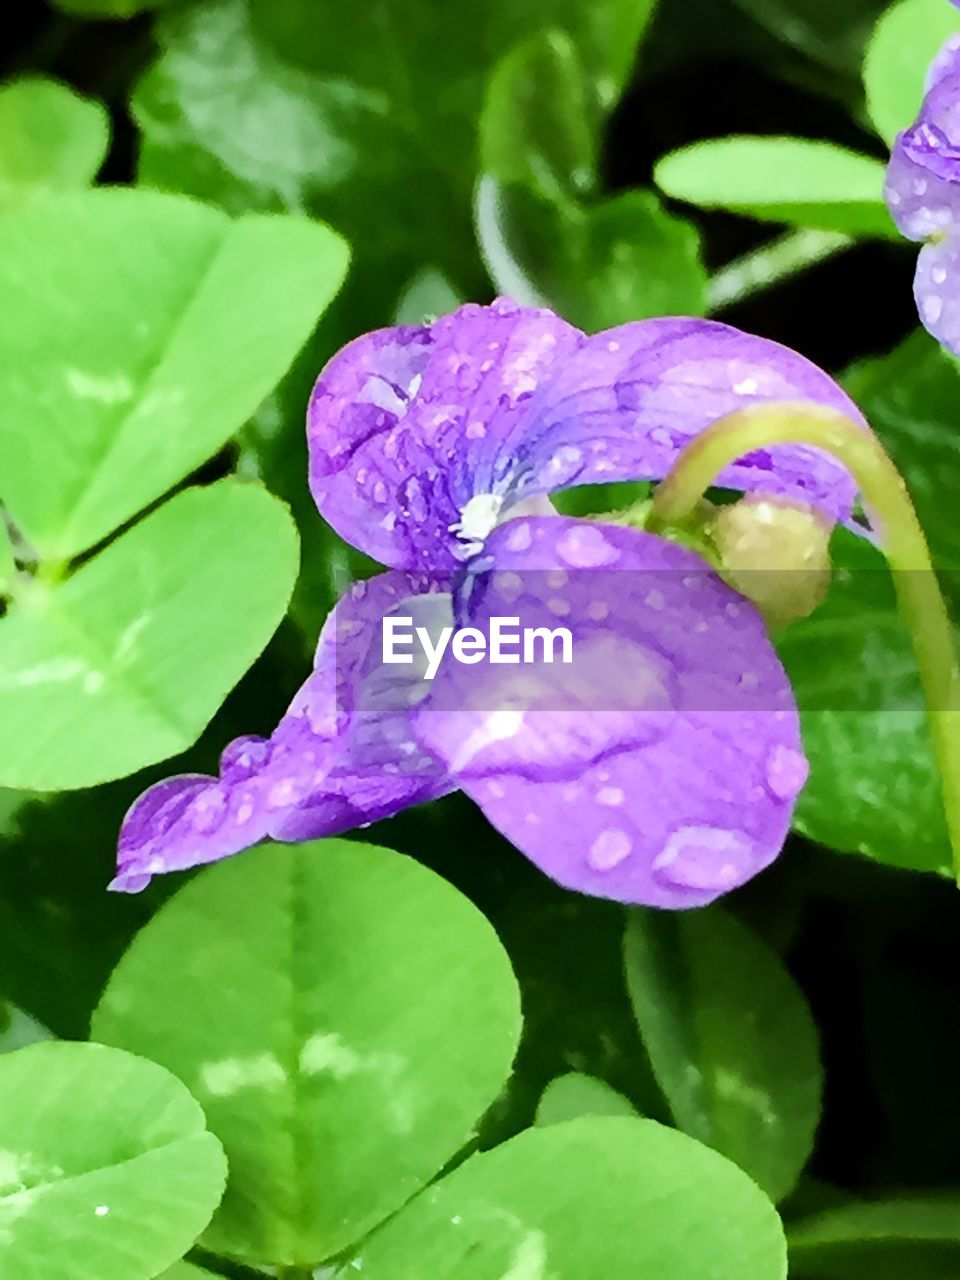 flower, growth, beauty in nature, drop, freshness, nature, fragility, petal, wet, purple, green color, leaf, plant, day, no people, water, outdoors, close-up, flower head, blooming